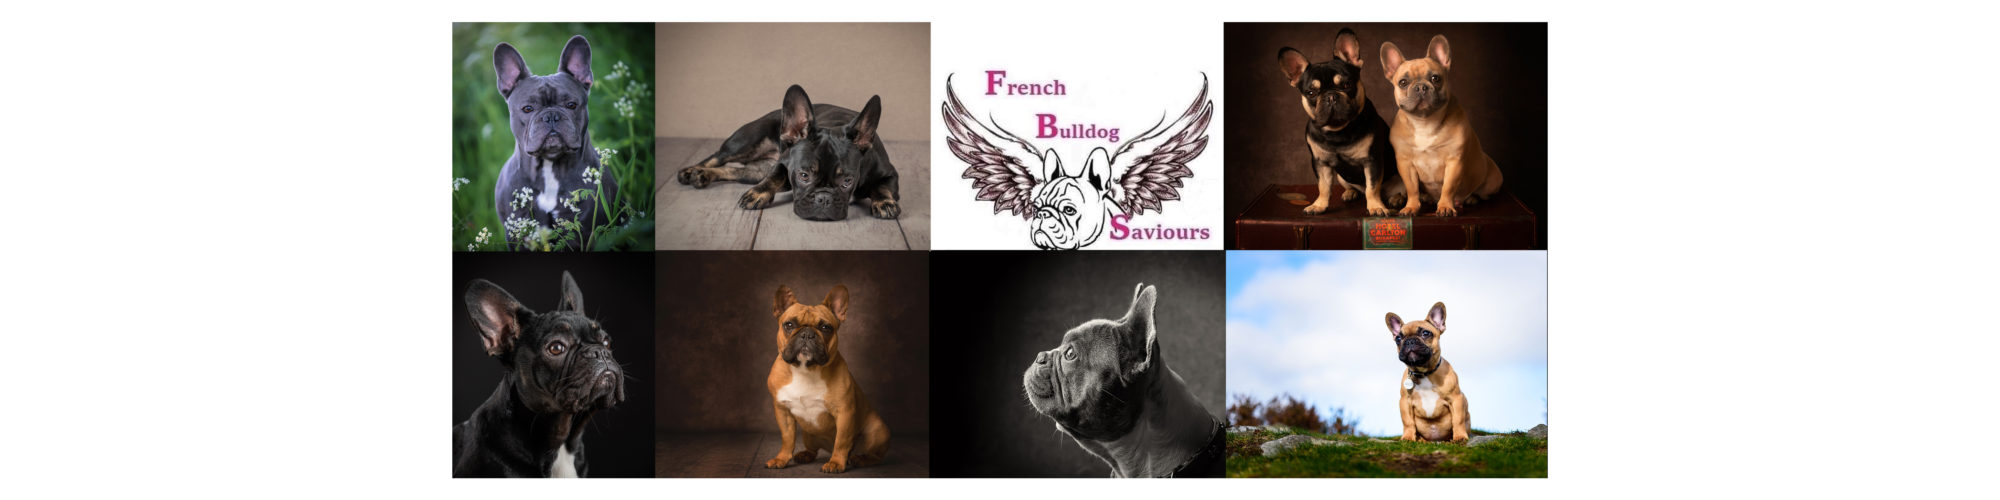 FUNDRAISING FOR FRENCH BULLDOG SAVIOURS